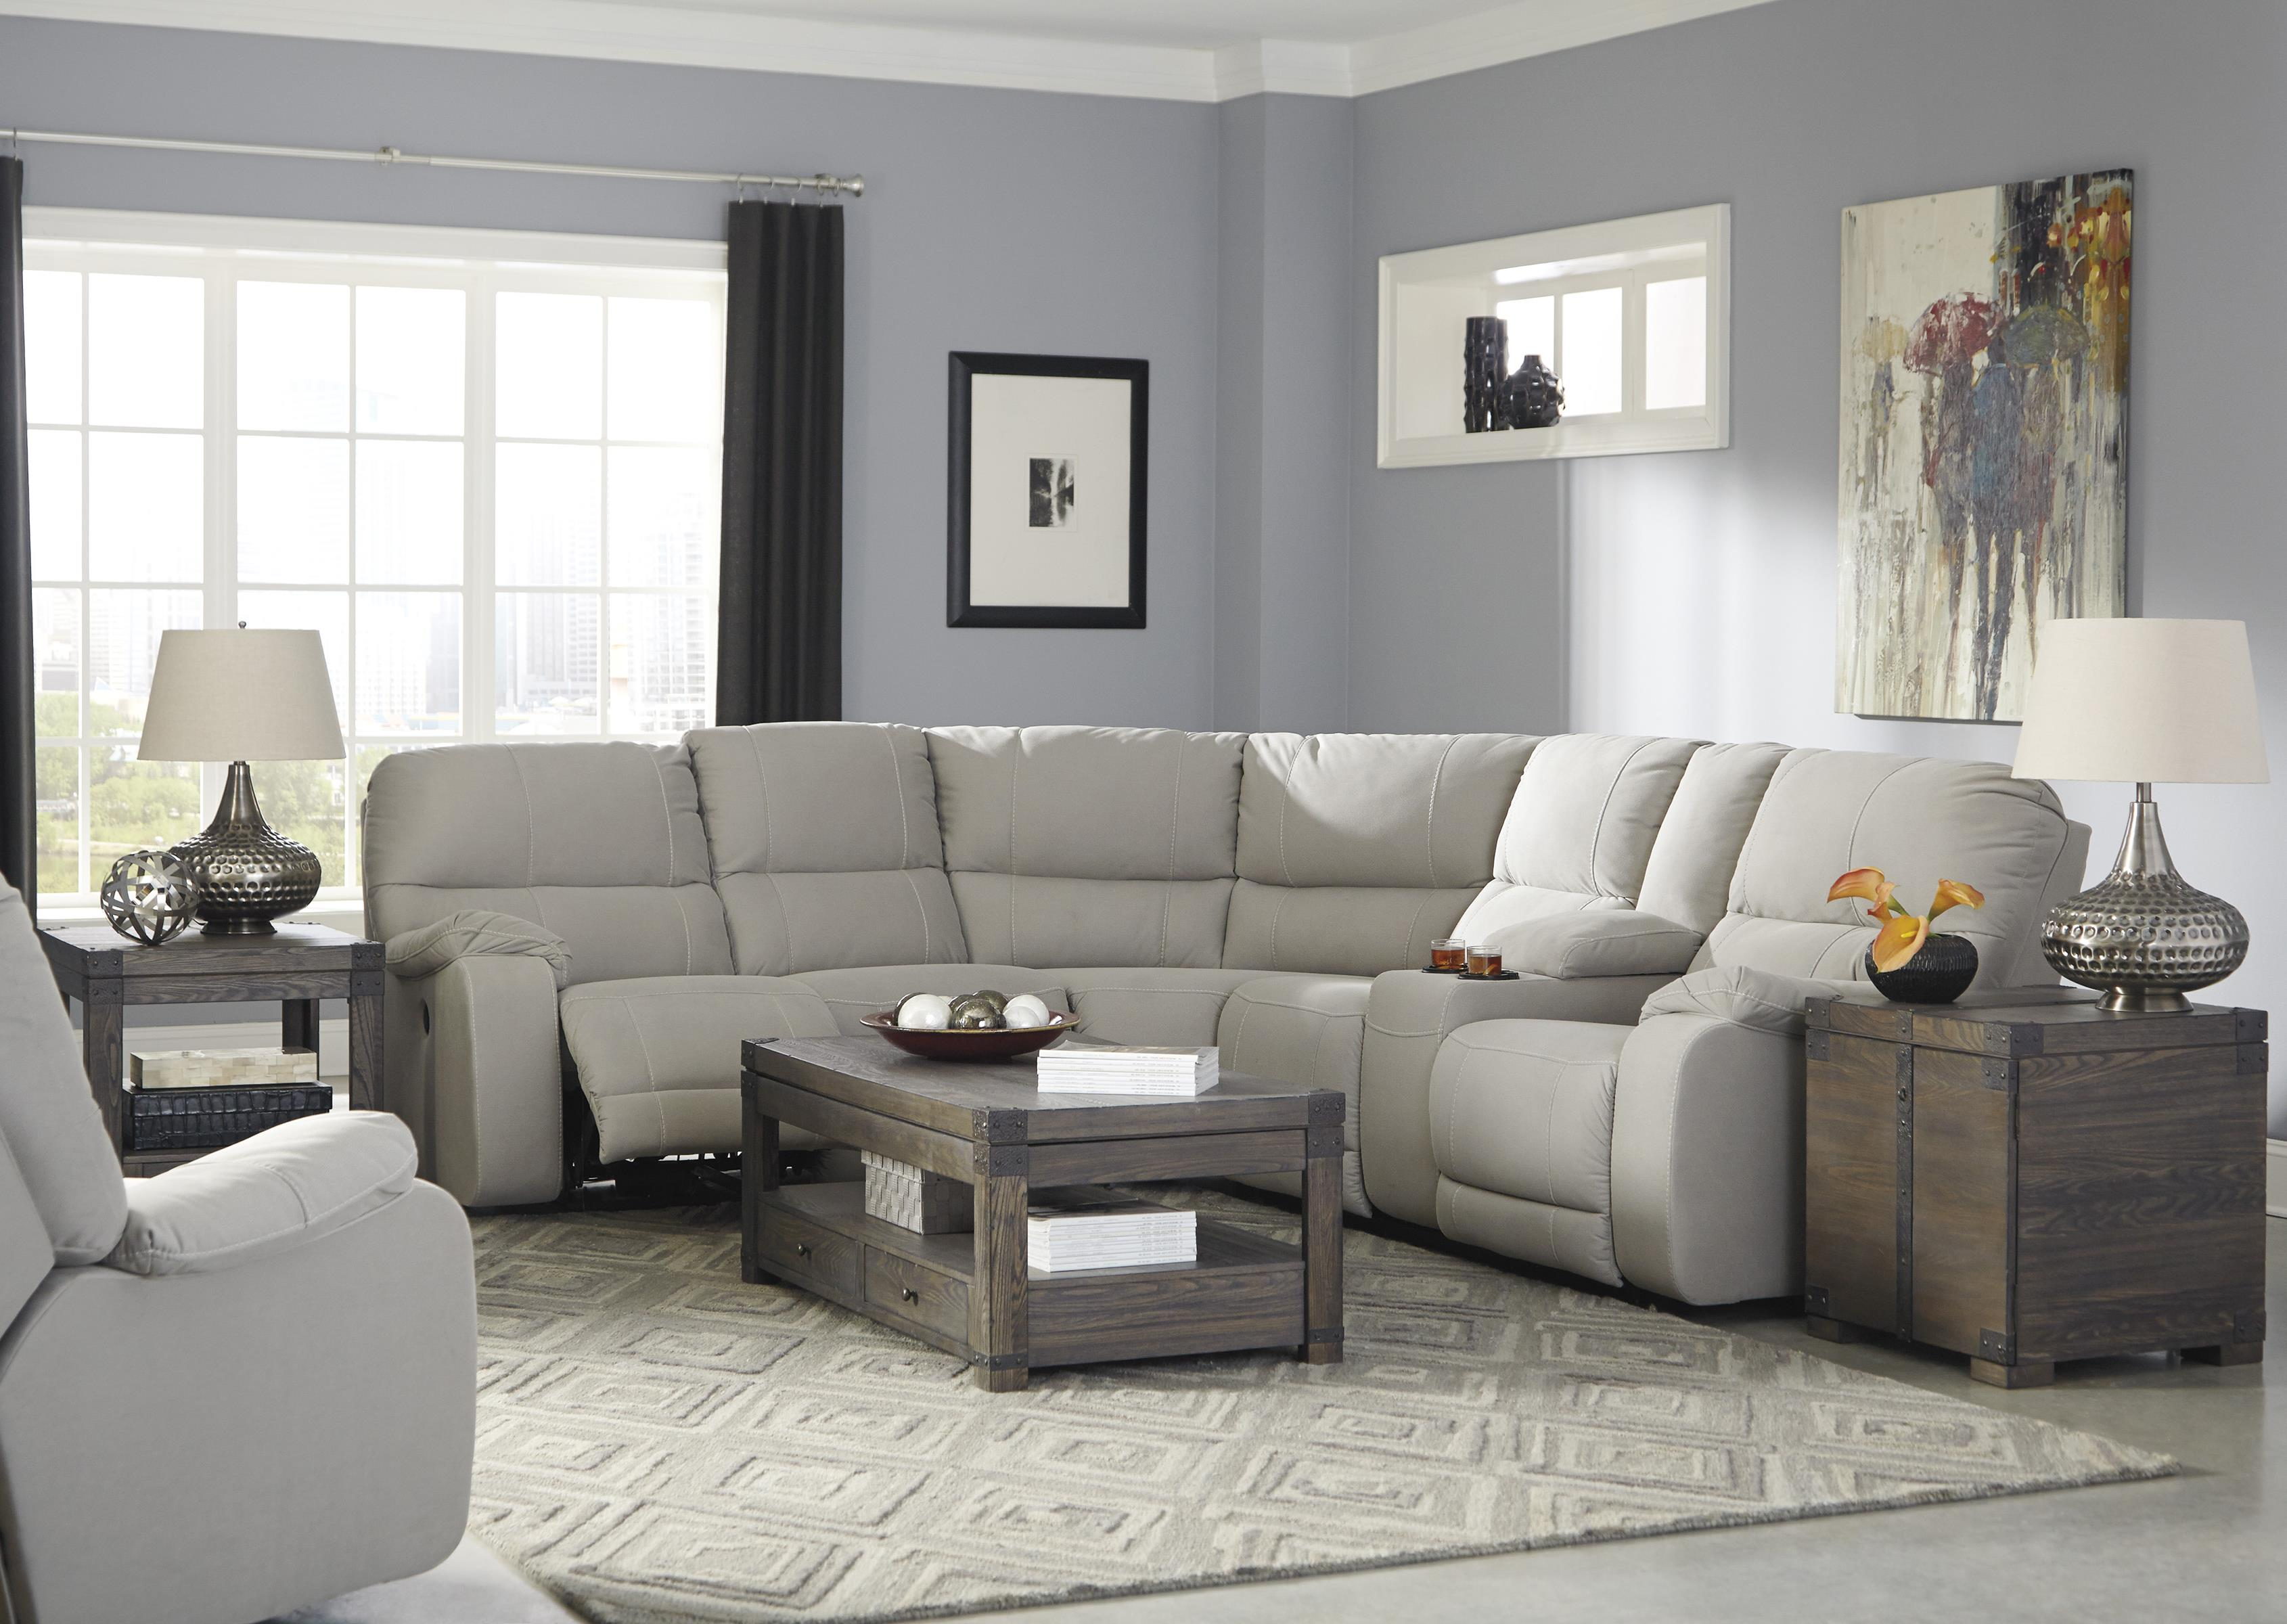 Benchcraft Bohannon Reclining Living Room Group - Item Number: 57401 Living Room Group 2